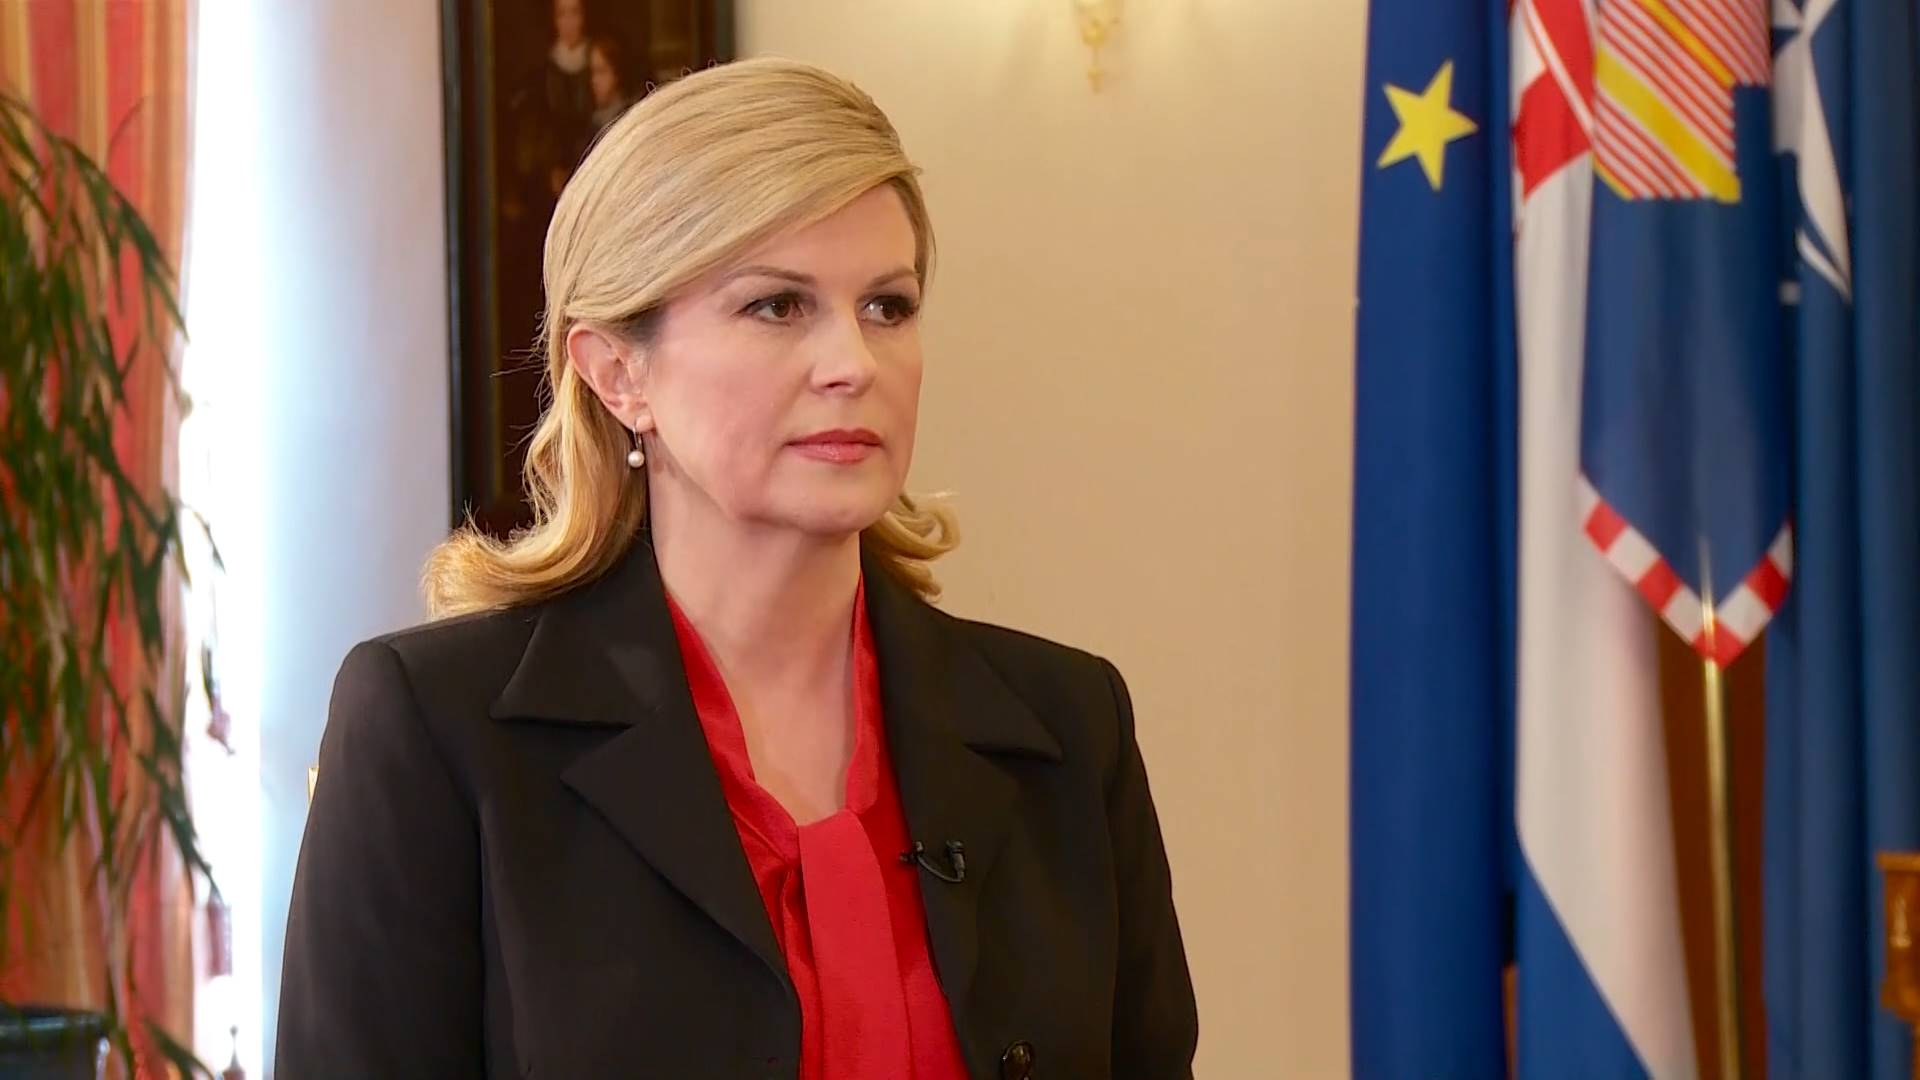 Croatian government gets victimized by spear phishing attack